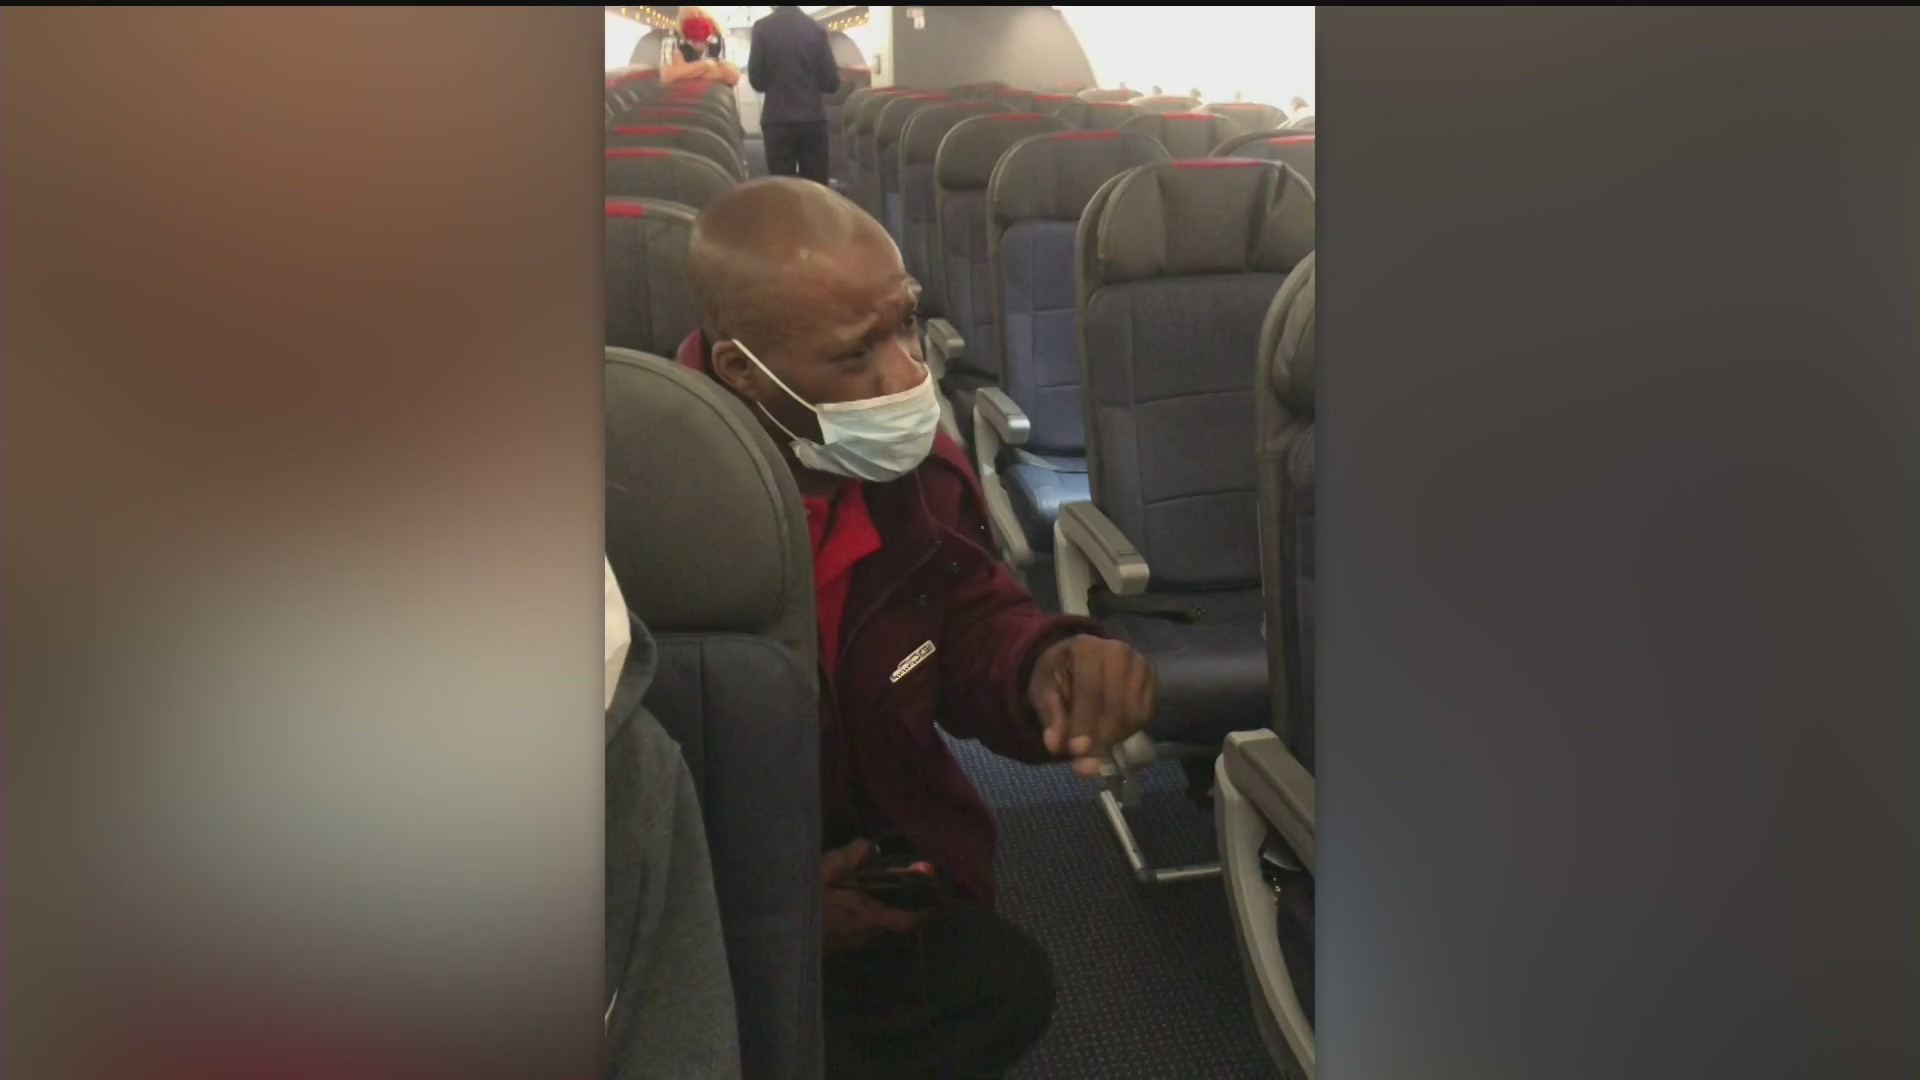 Six passengers were ordered off an American Airlines flight over what they claim was racial discrimination on May 31, as pictured in this image obtained by KTLA.